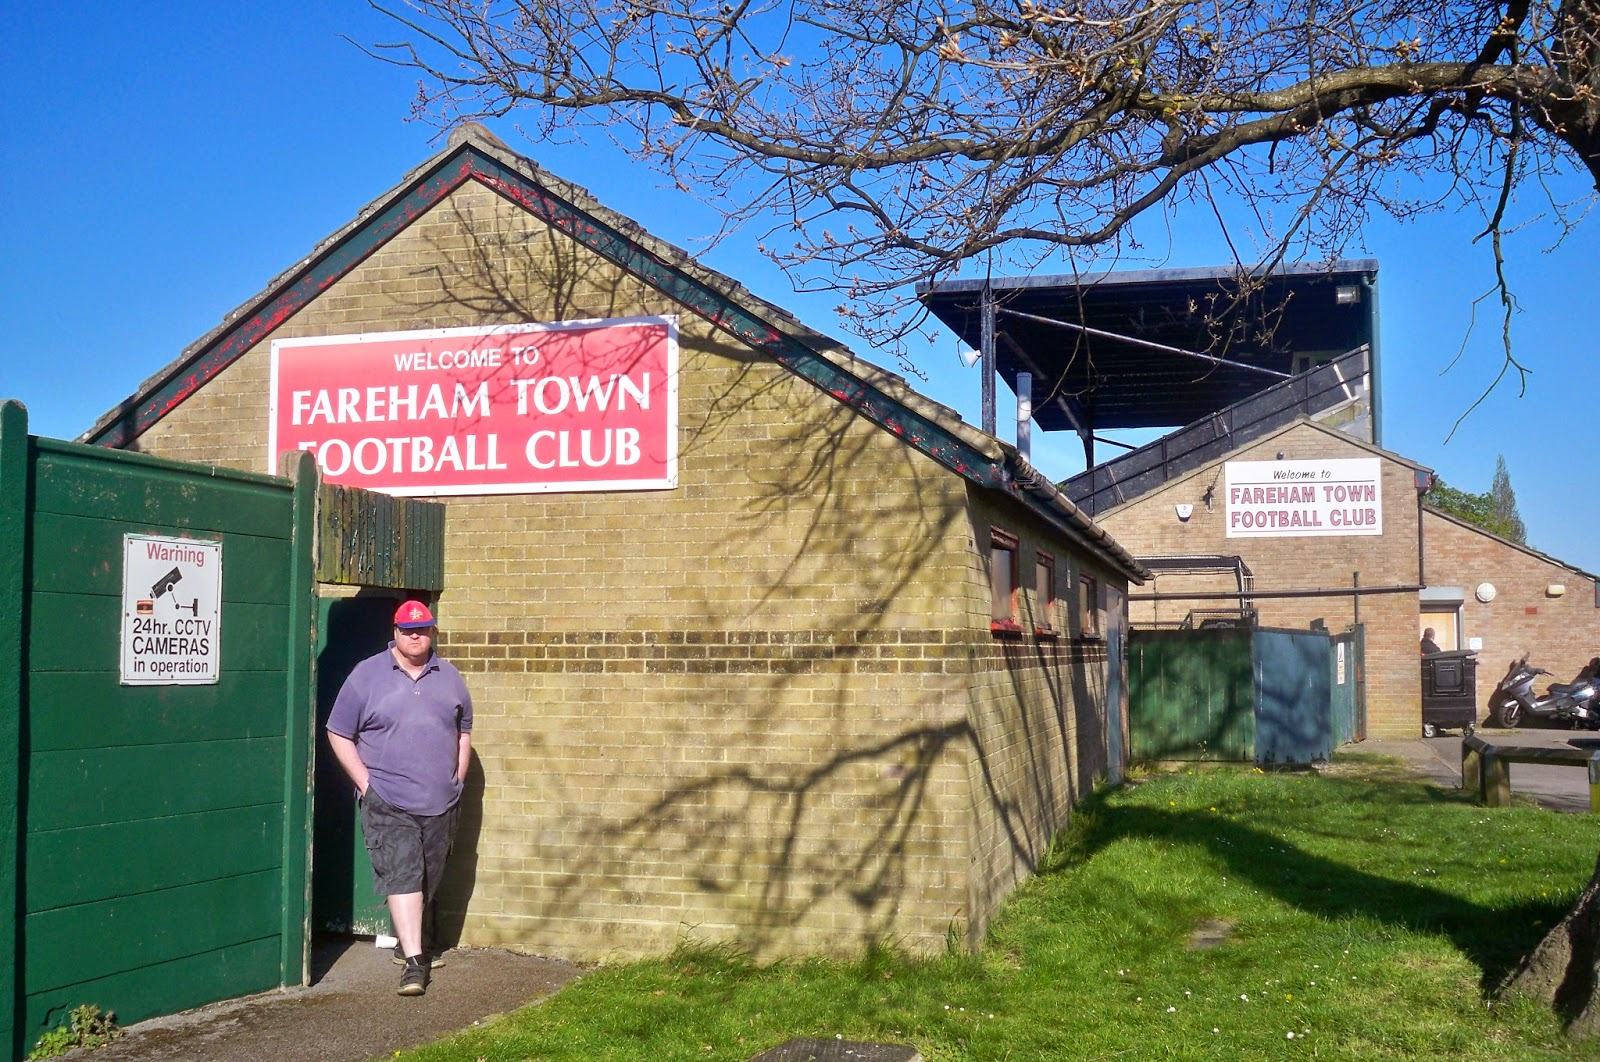 Fareham Celebrates Its First 25 Years With The Falkland Islands